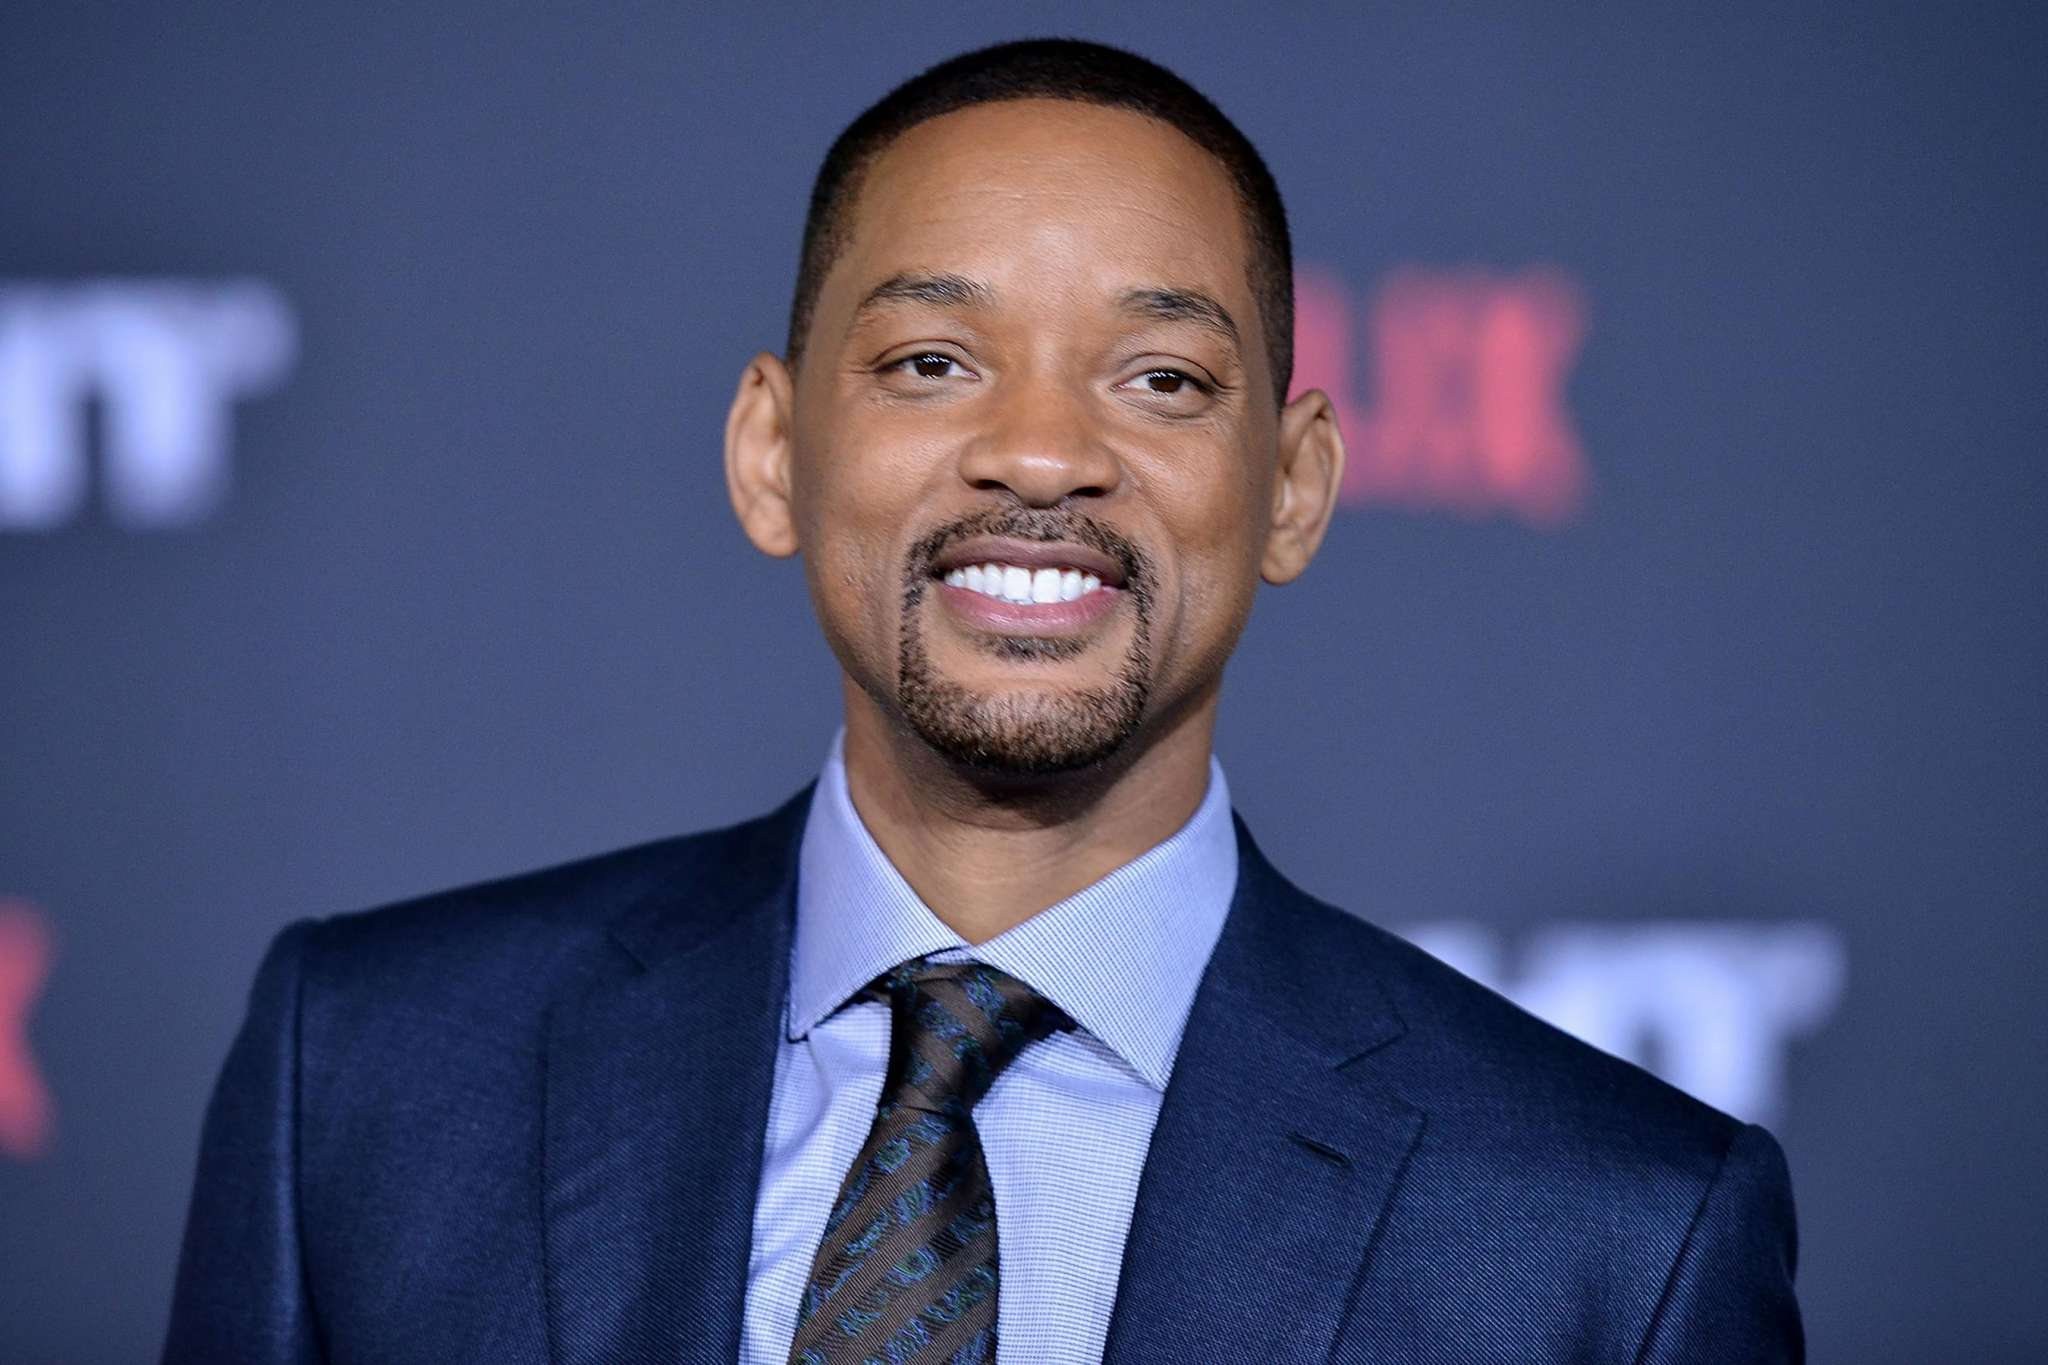 will-smith-says-he-felt-trapped-by-being-himself-when-he-turned-50